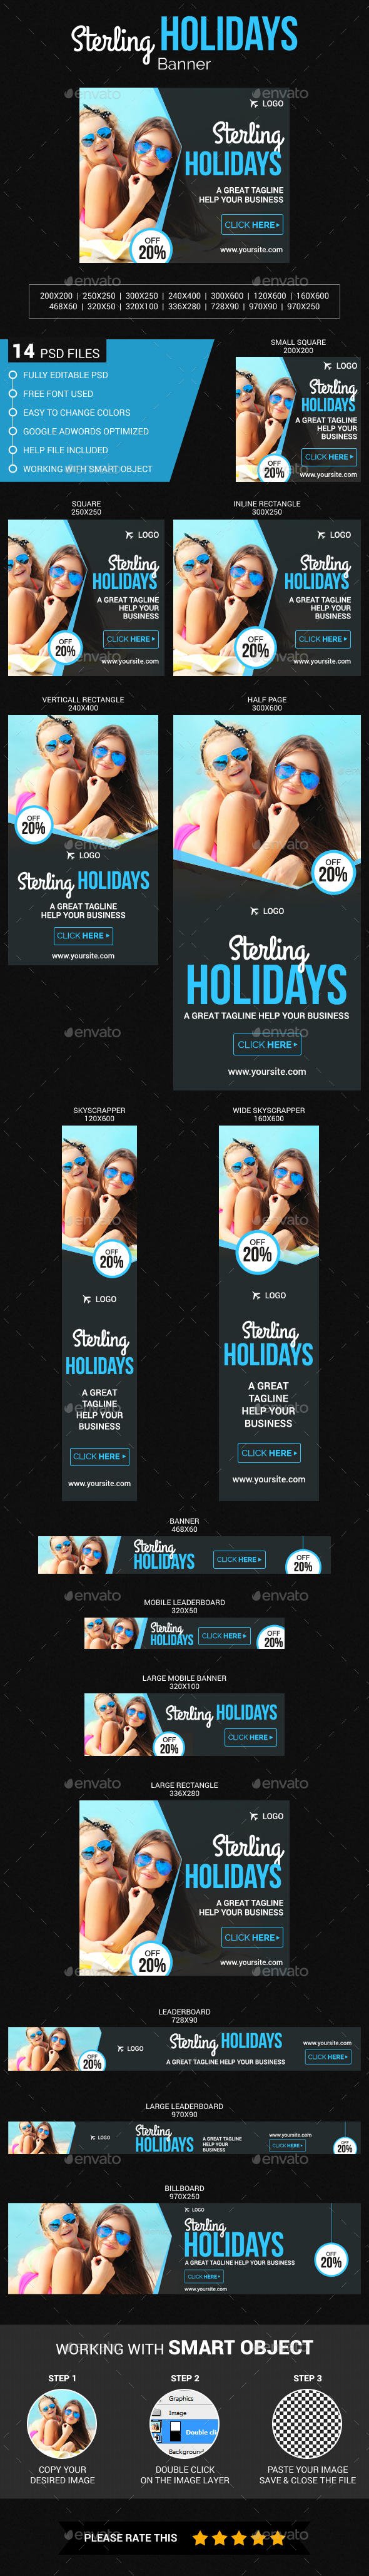 Sterling Holidays Banner - Banners & Ads Web Elements